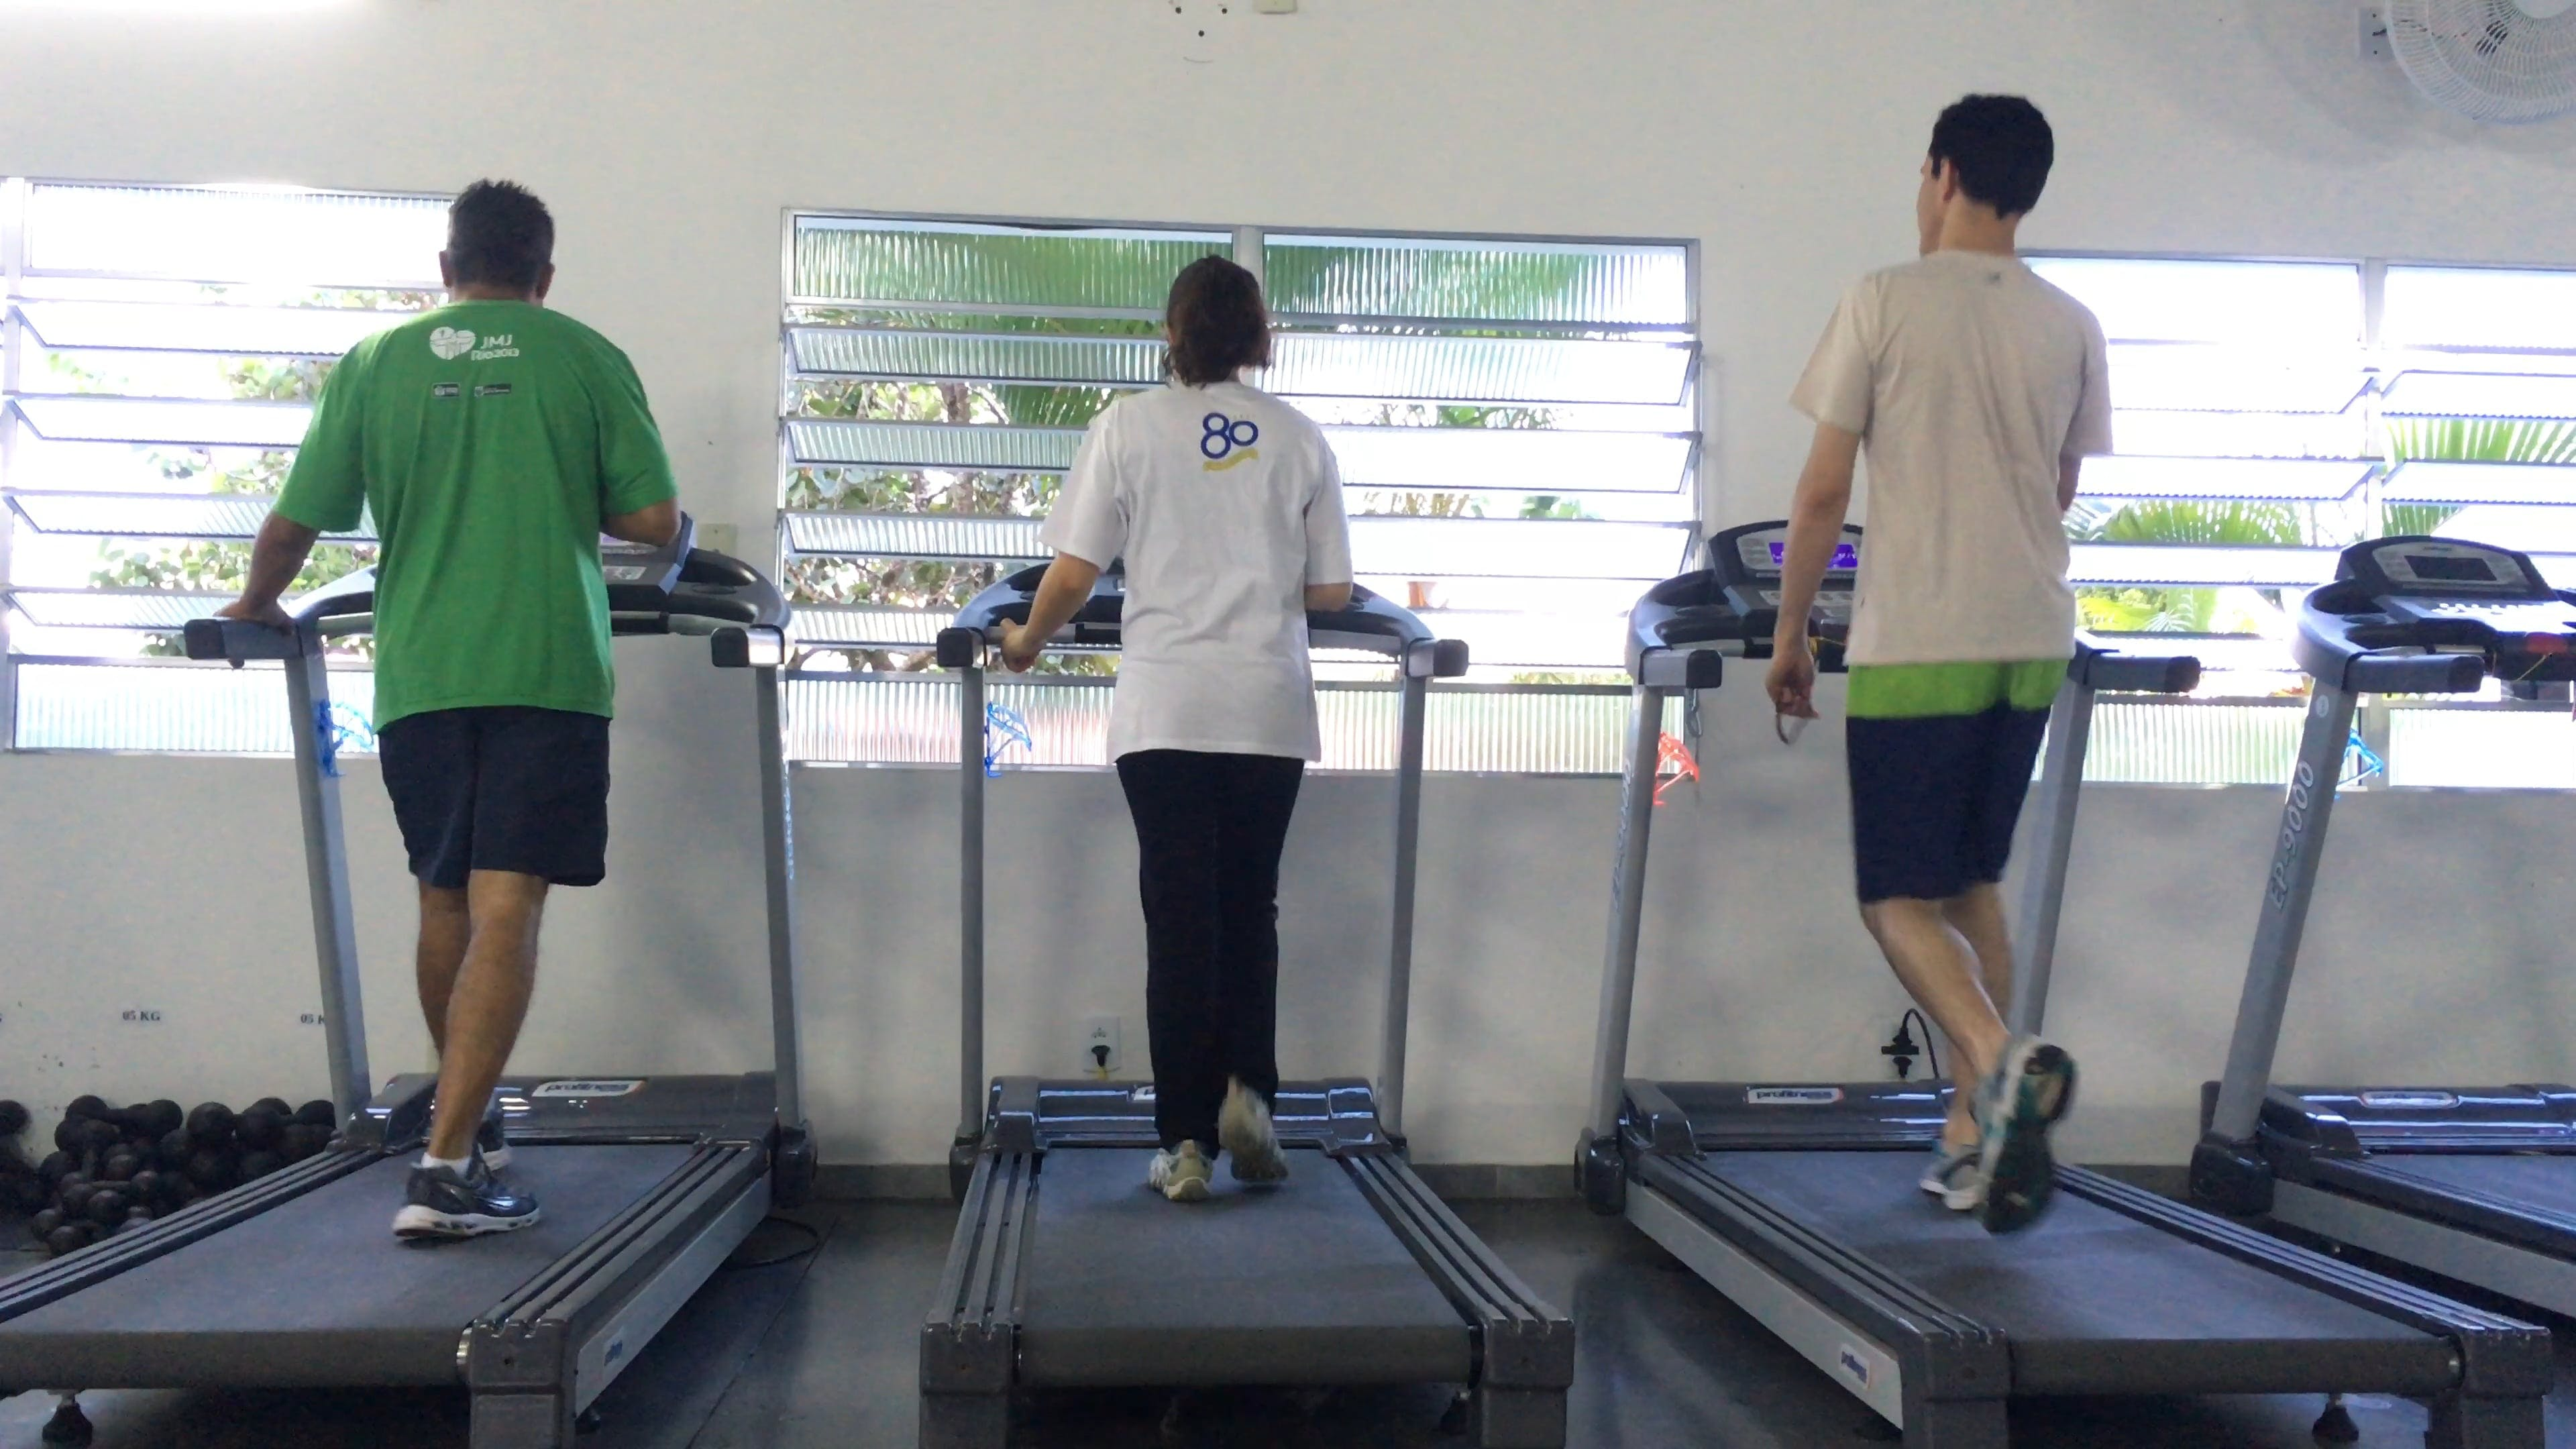 People Doing Exercises On A TreadMill